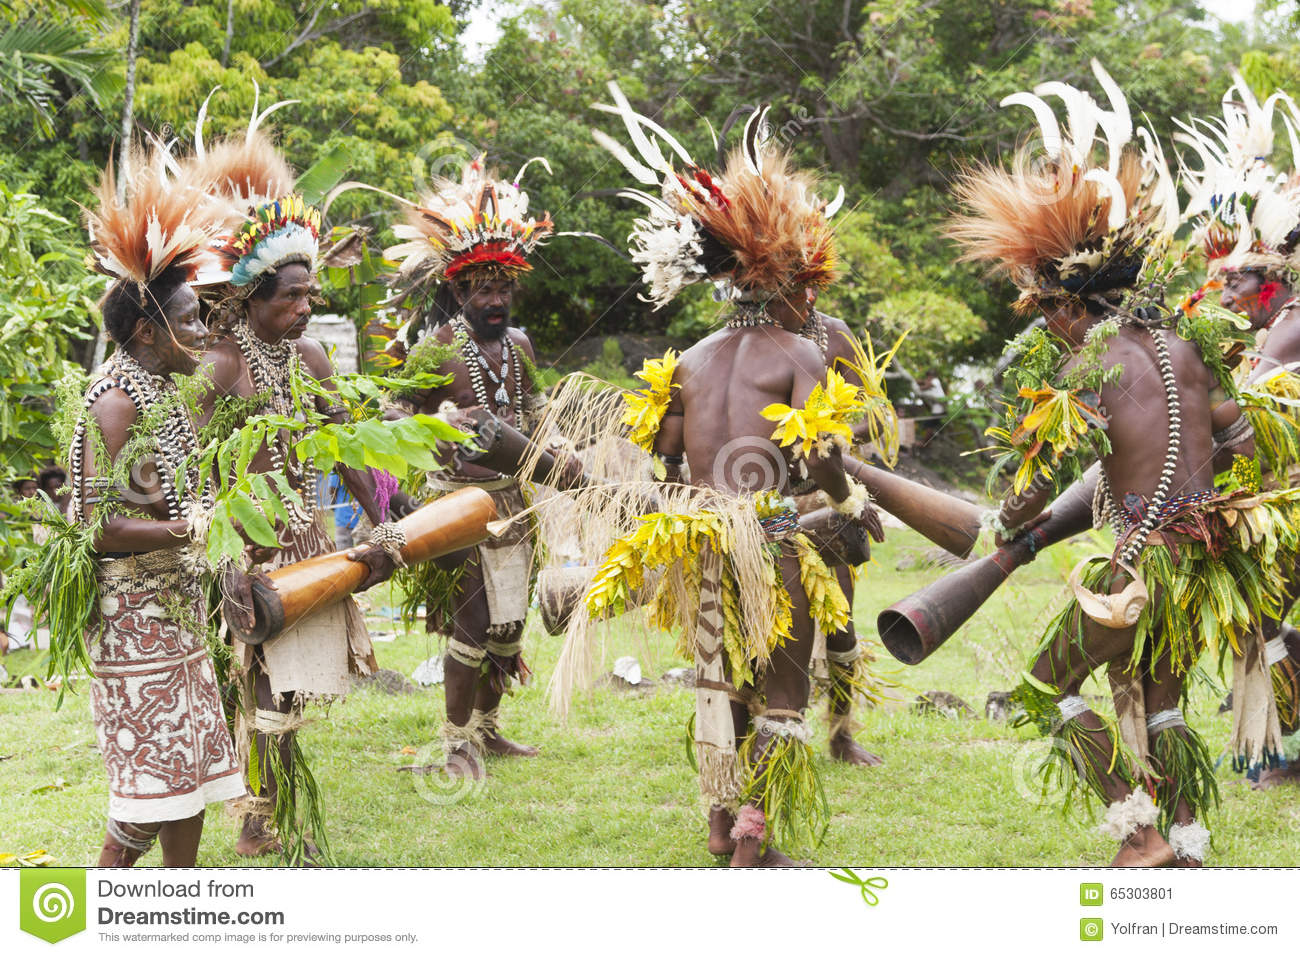 Warrior tribe dancing in tropical rainforest village